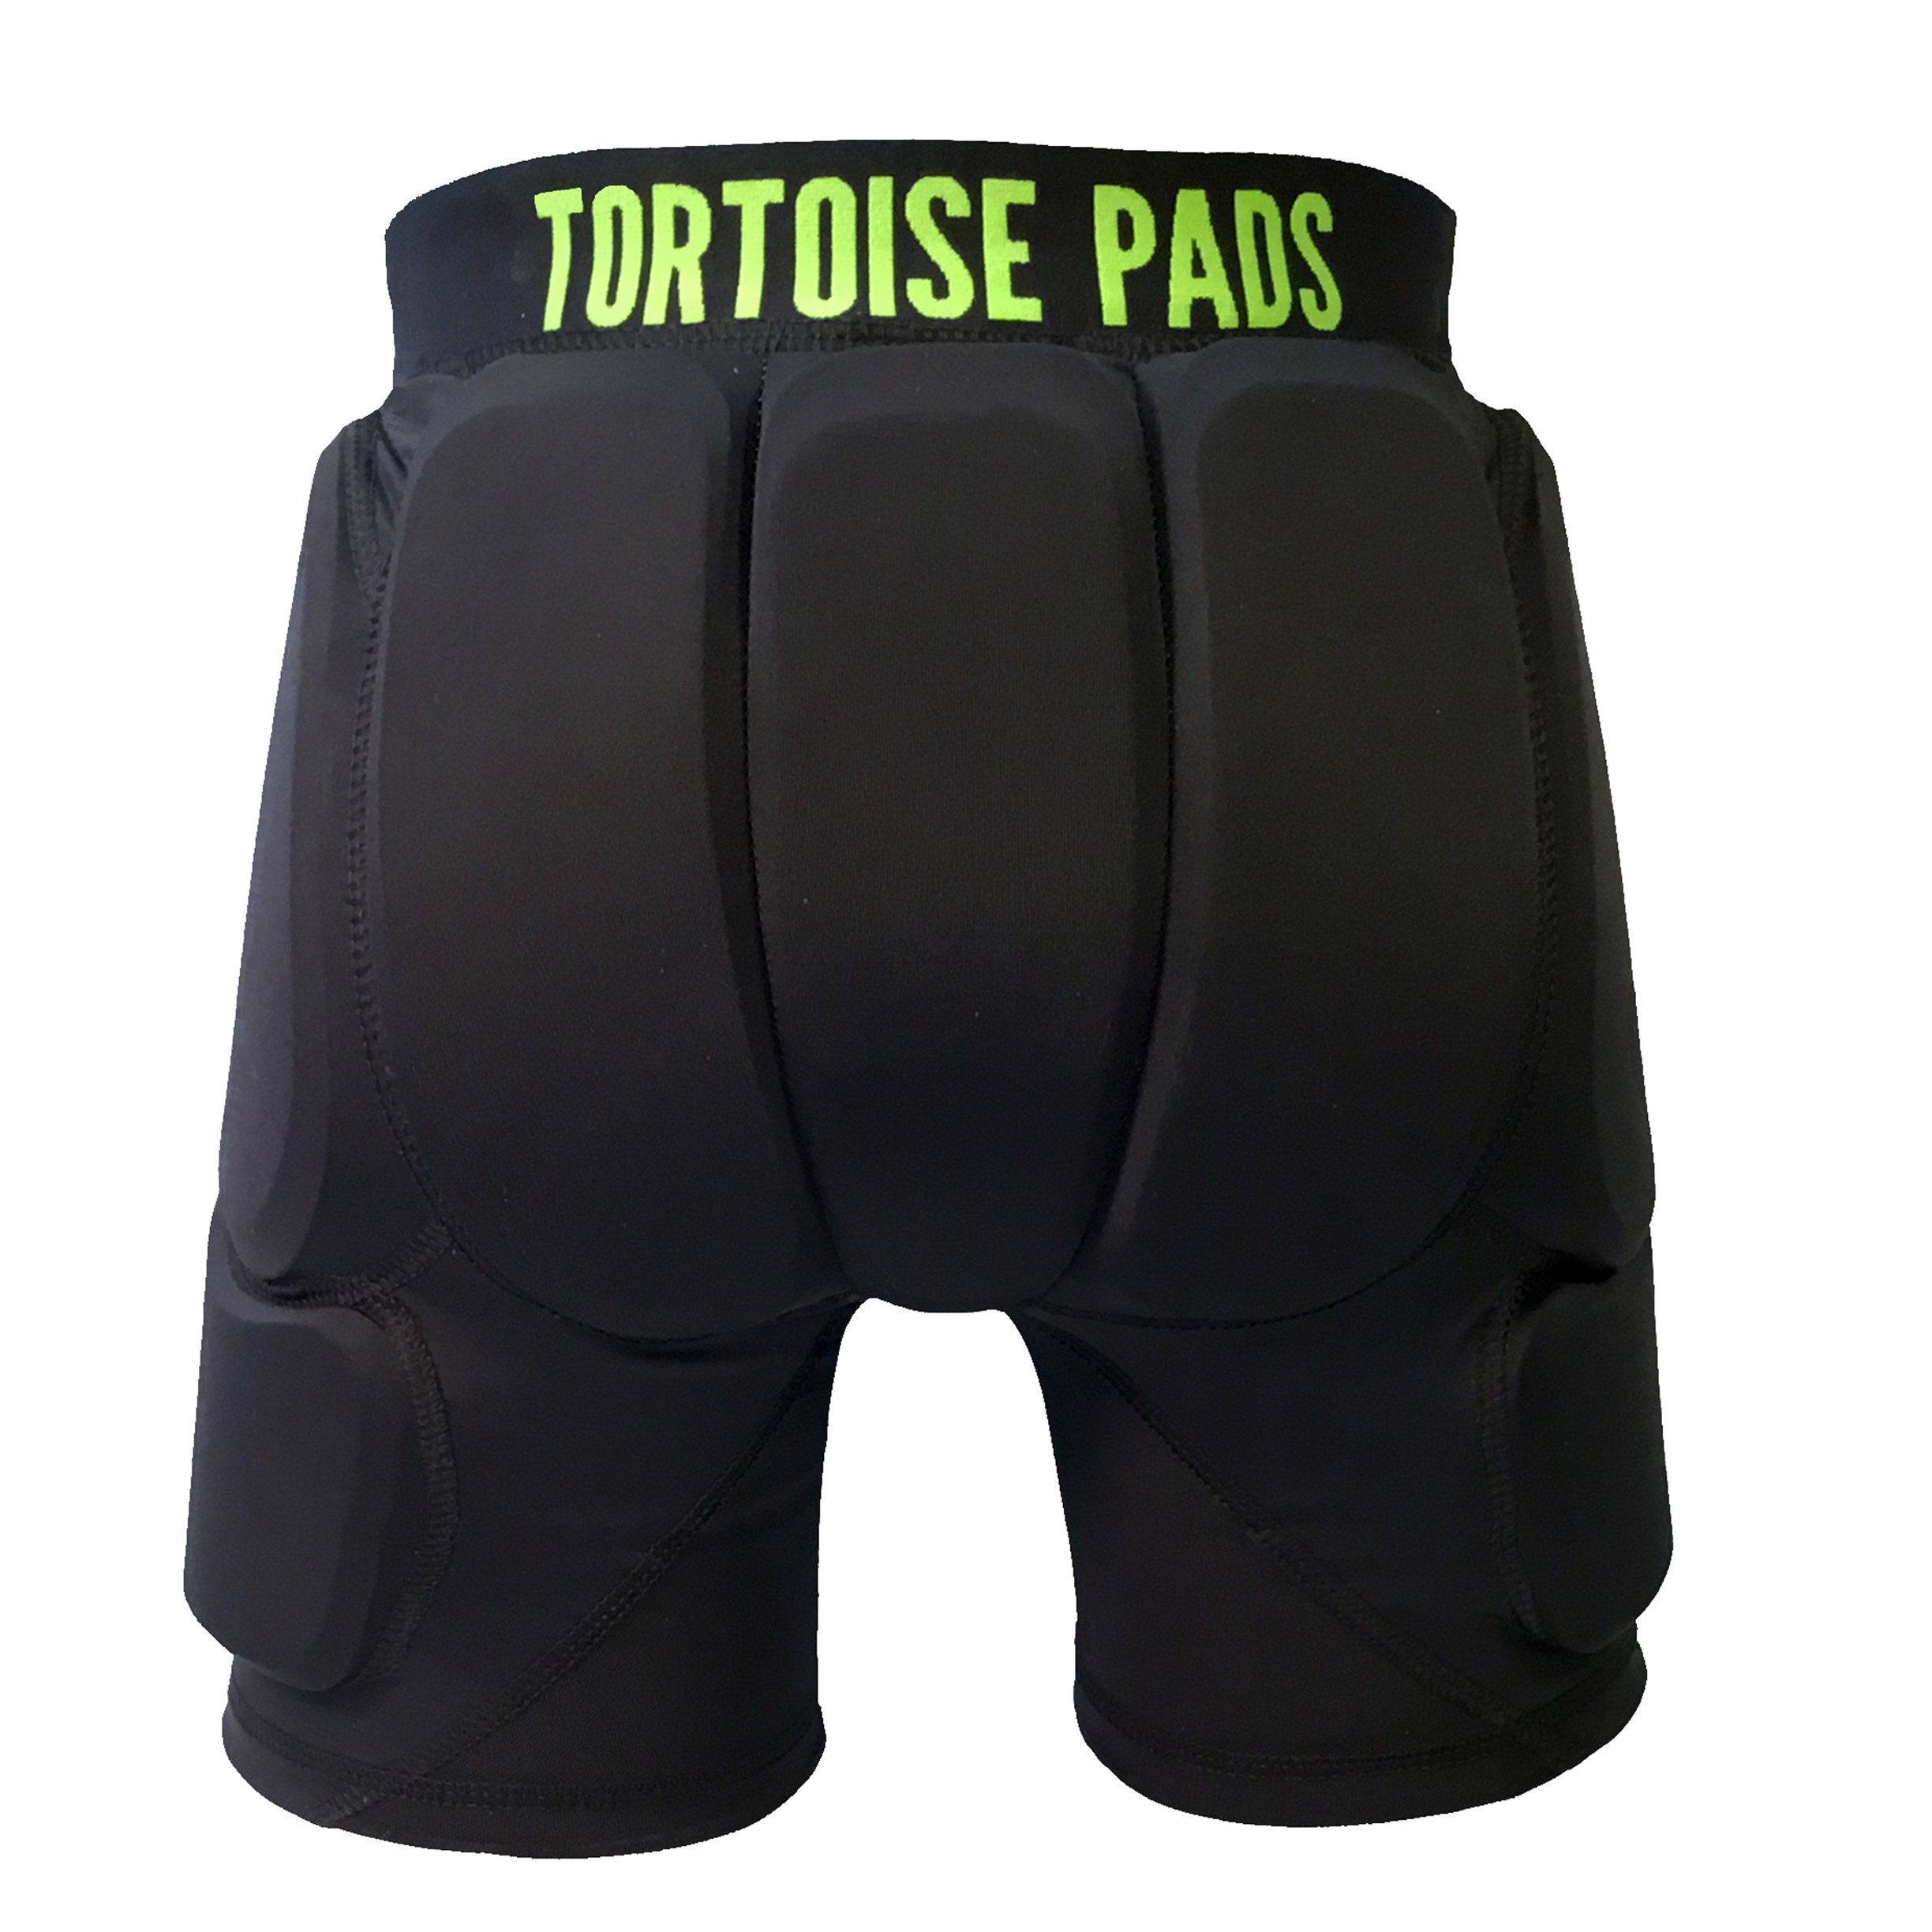 Tortoise Pads T2 High Impact Protection Padded Shorts with Dual Density EVA Foam (Adult Medium) by Tortoise Pads